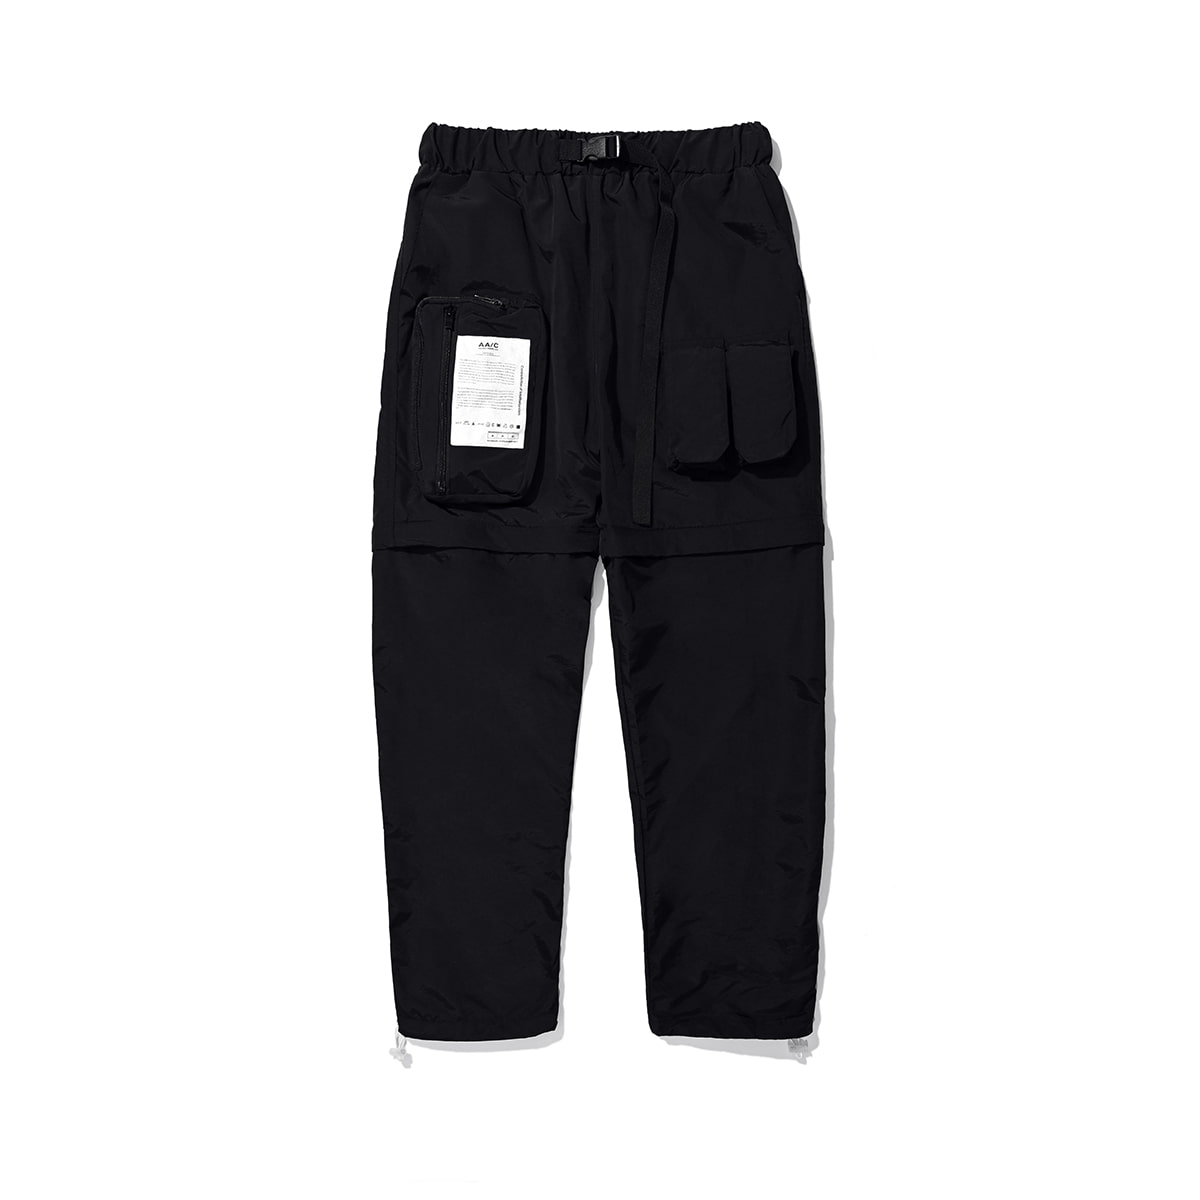 Zippered Hybrid Shorts/Pants (black)